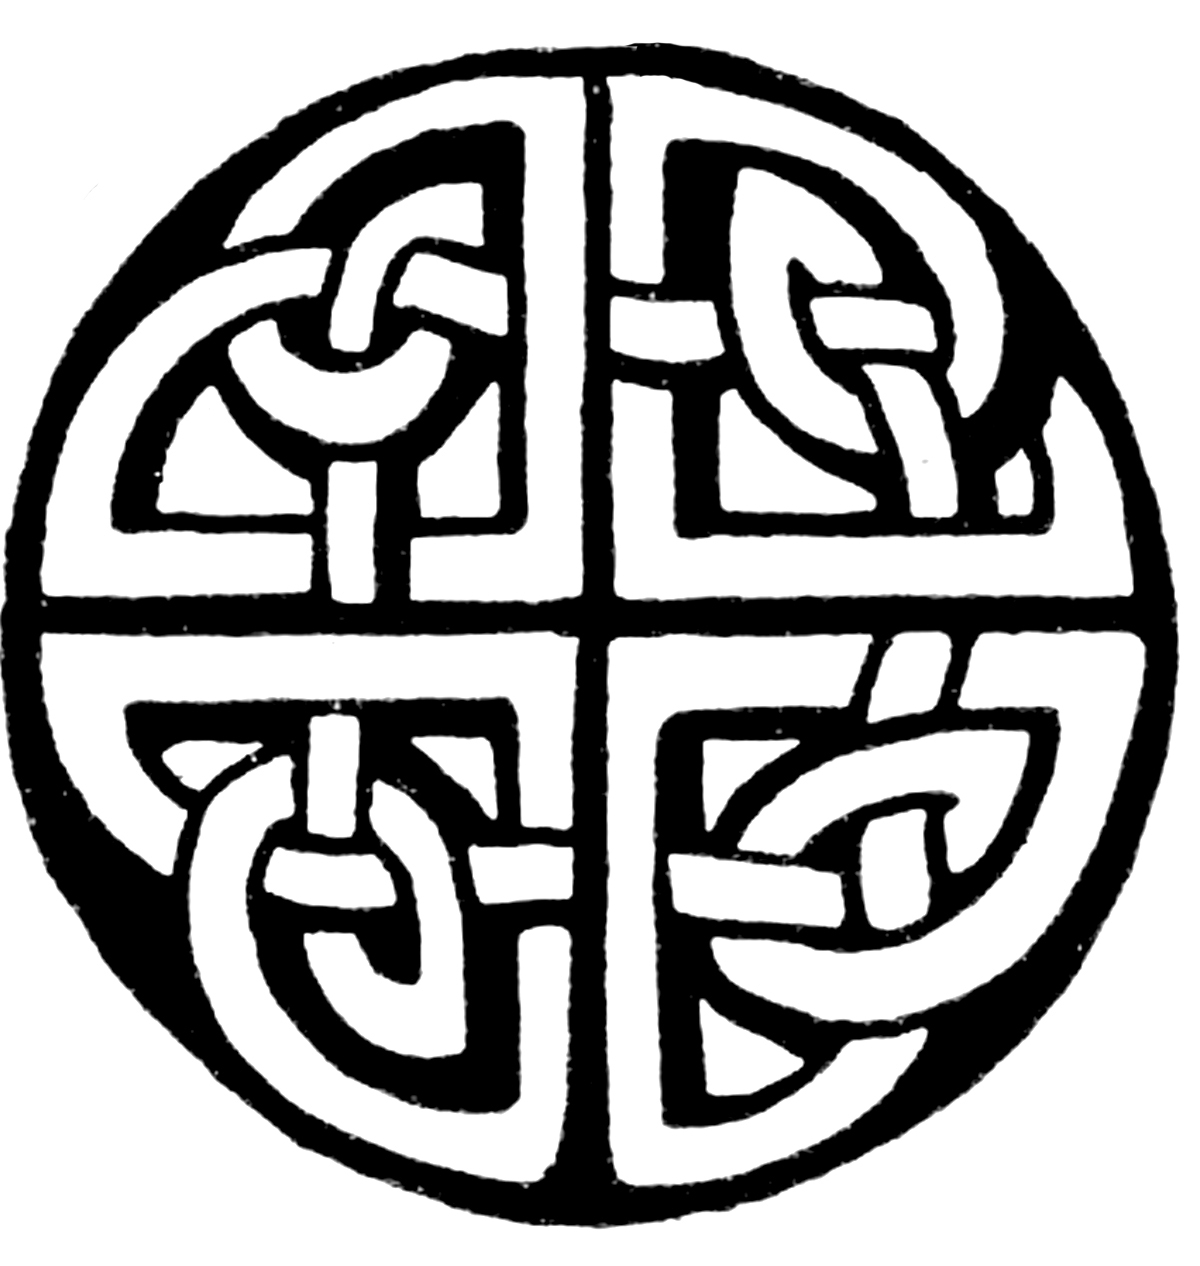 celtic drawings celtic ornament images the graphics fairy celtic drawings